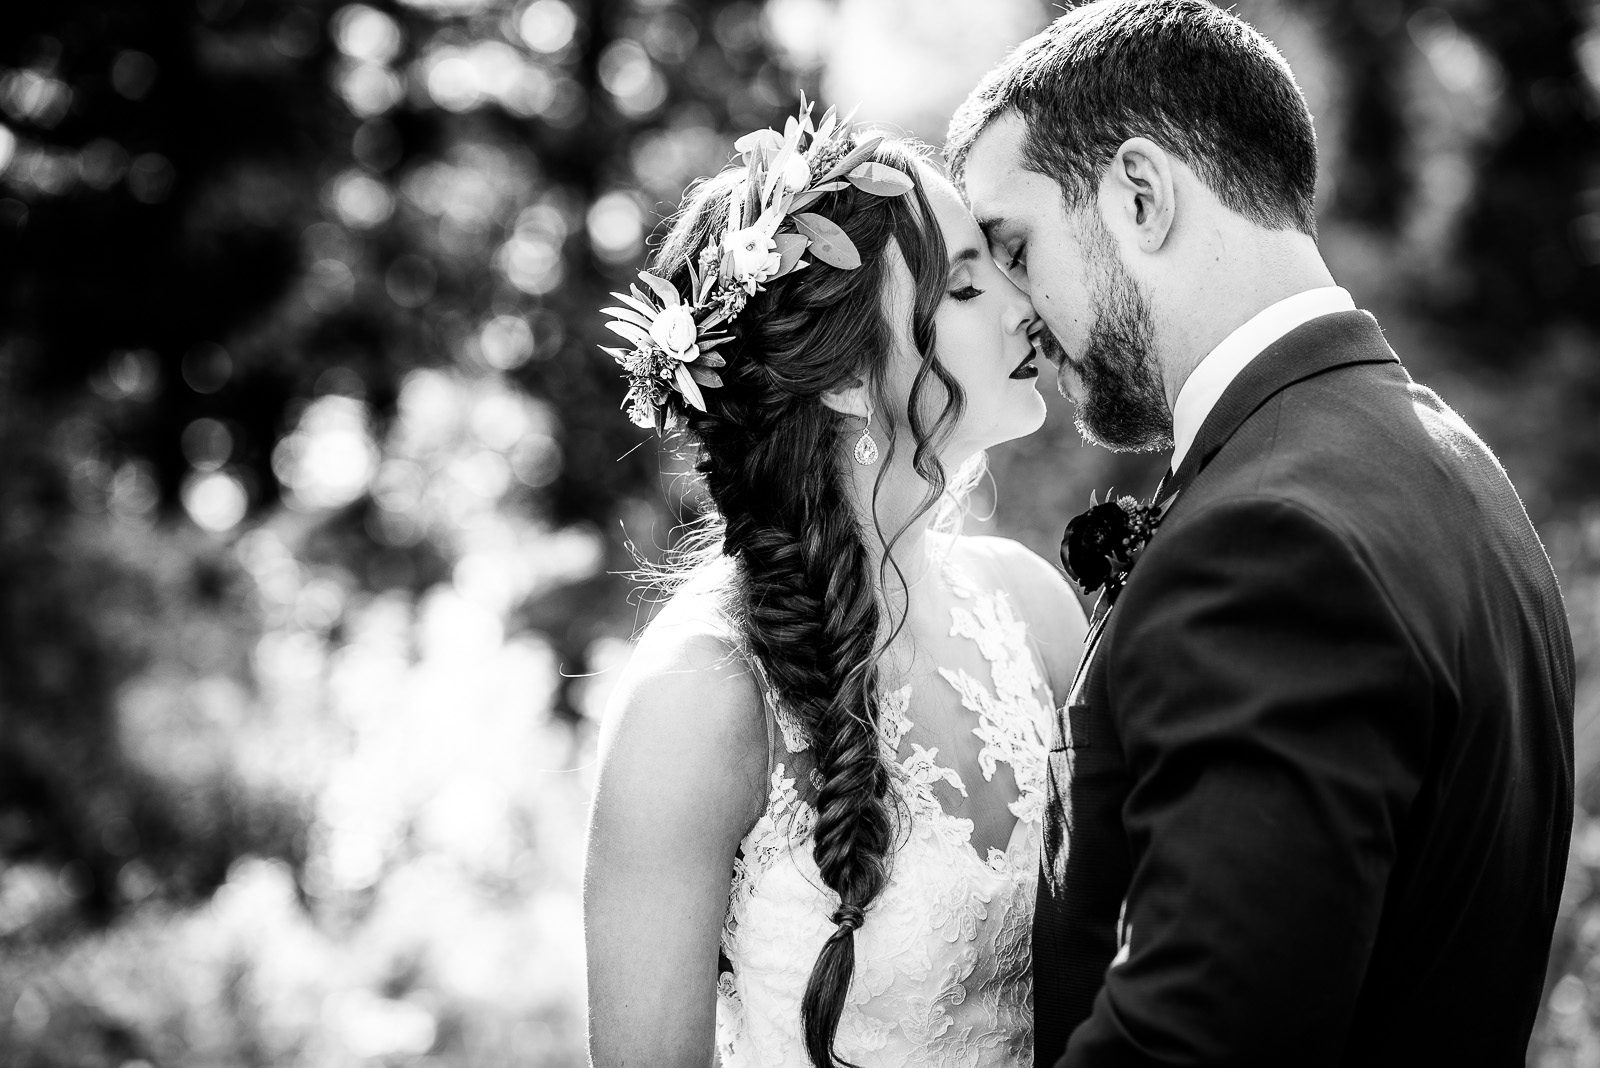 Eric_and_Christy_Photography_Blog_2018_Portraits-48